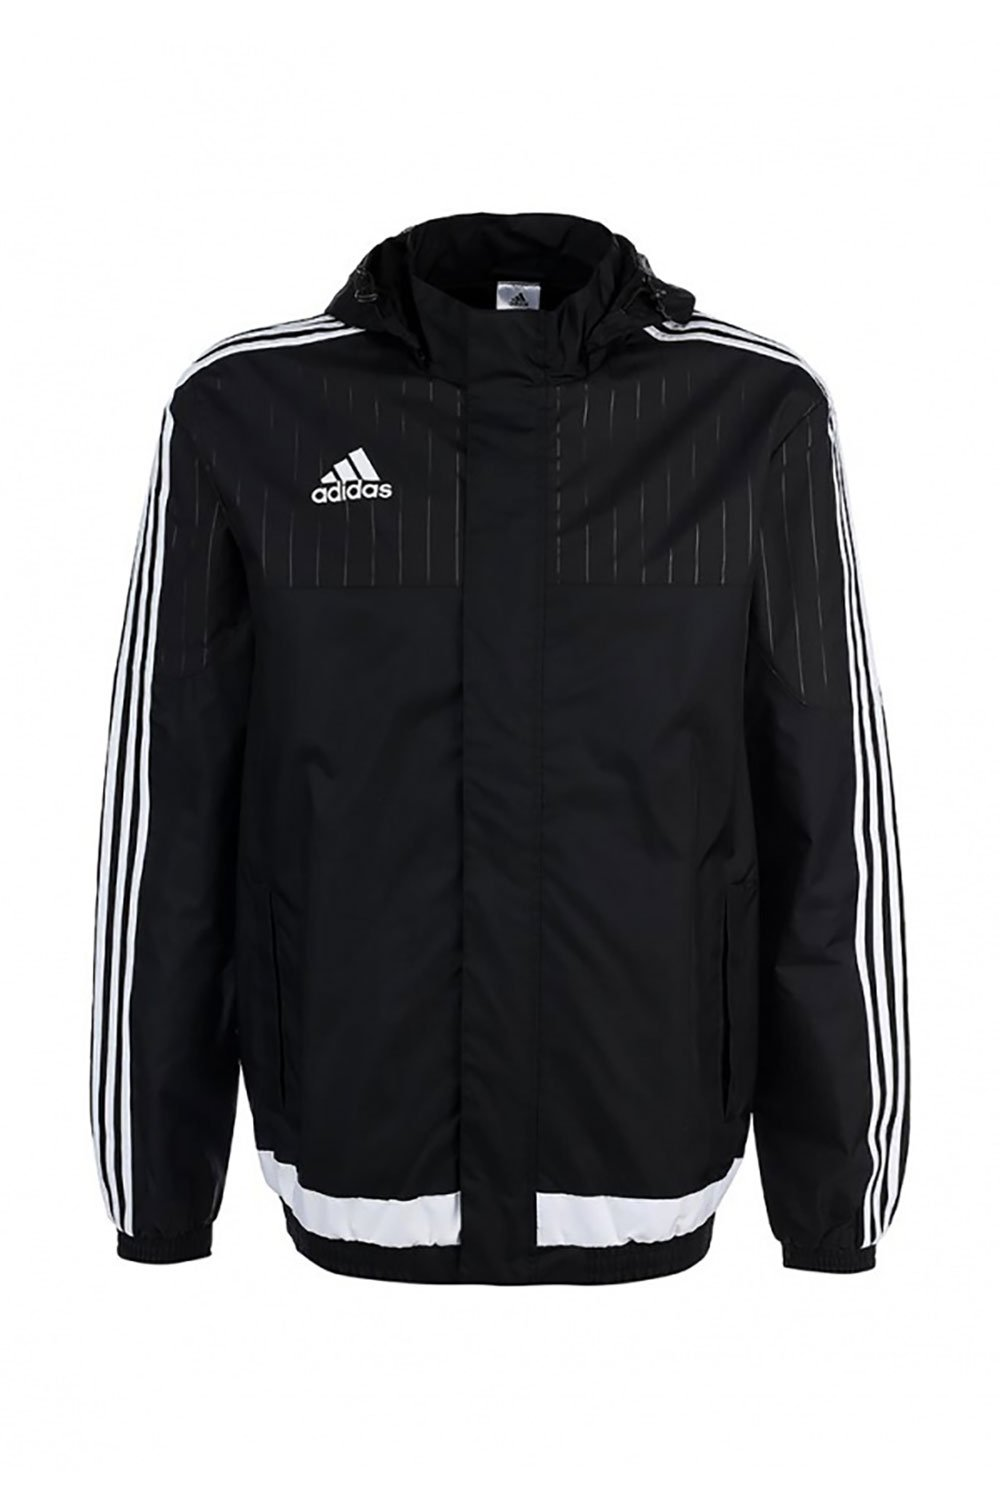 Youth CR7 Dri Fit Mercurial Track Jacket Black